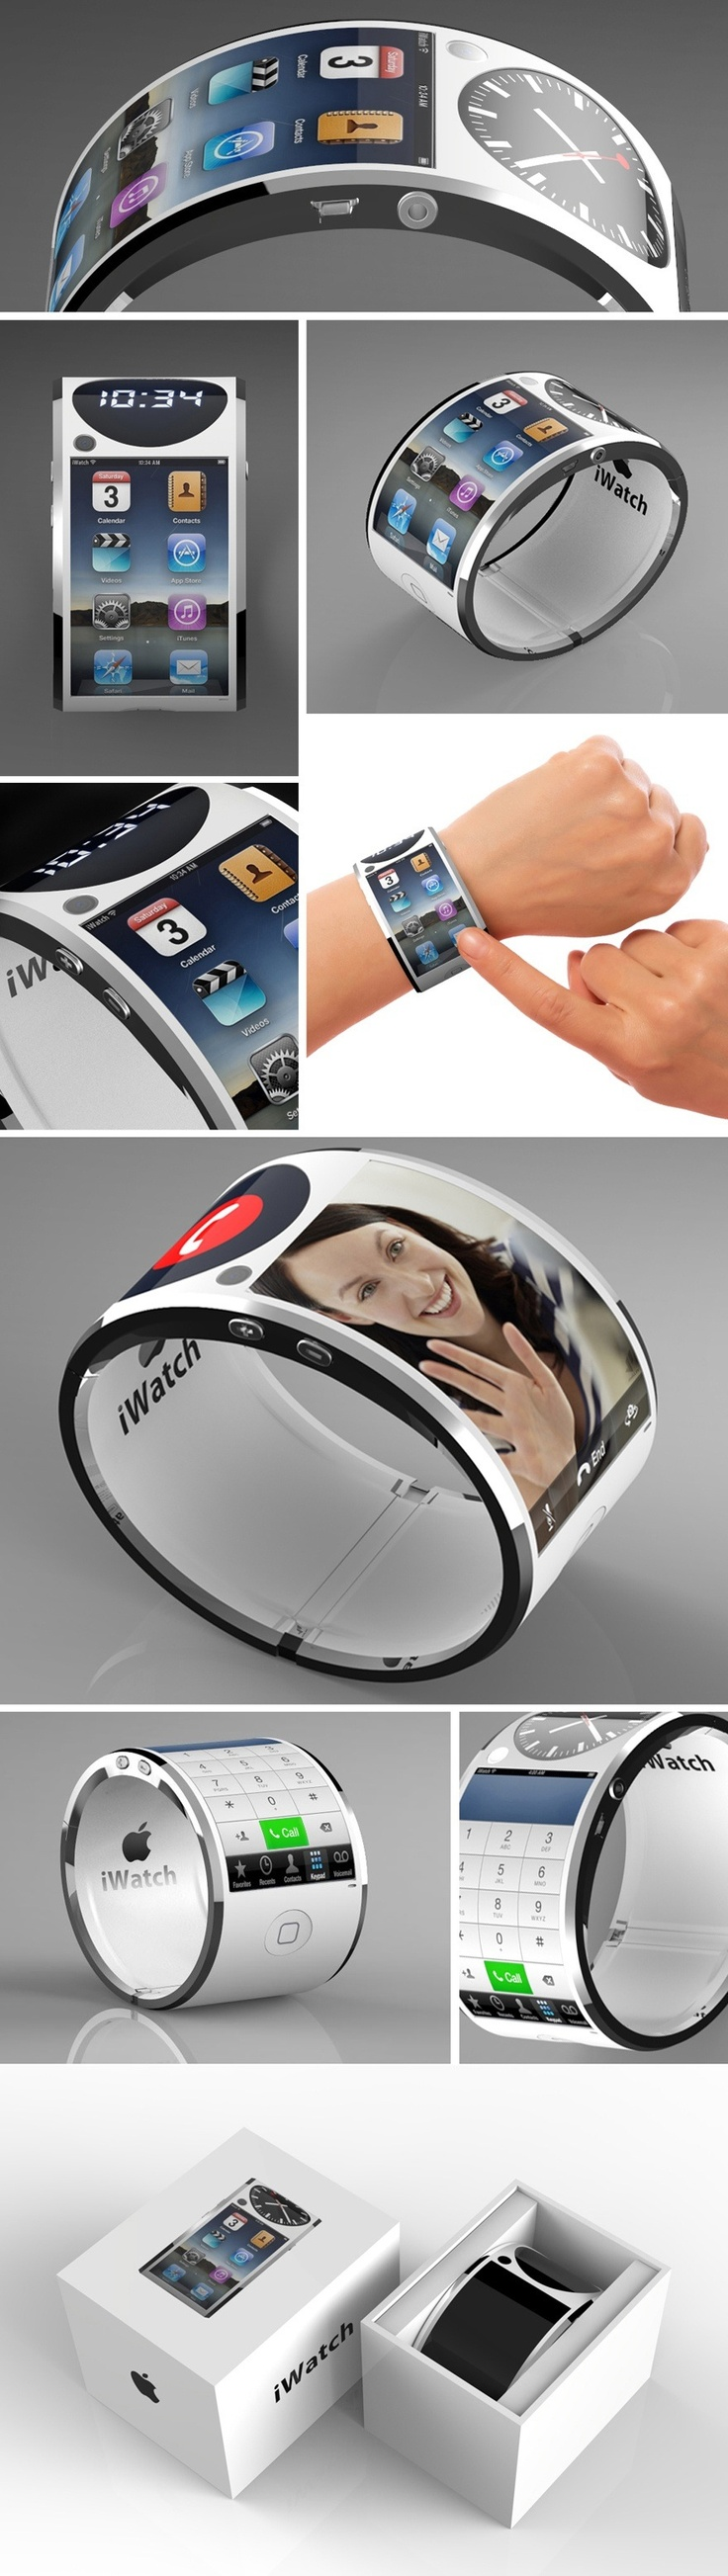 Apple iwatch. Not sure it will look like this, but I'll want one when they come out!!